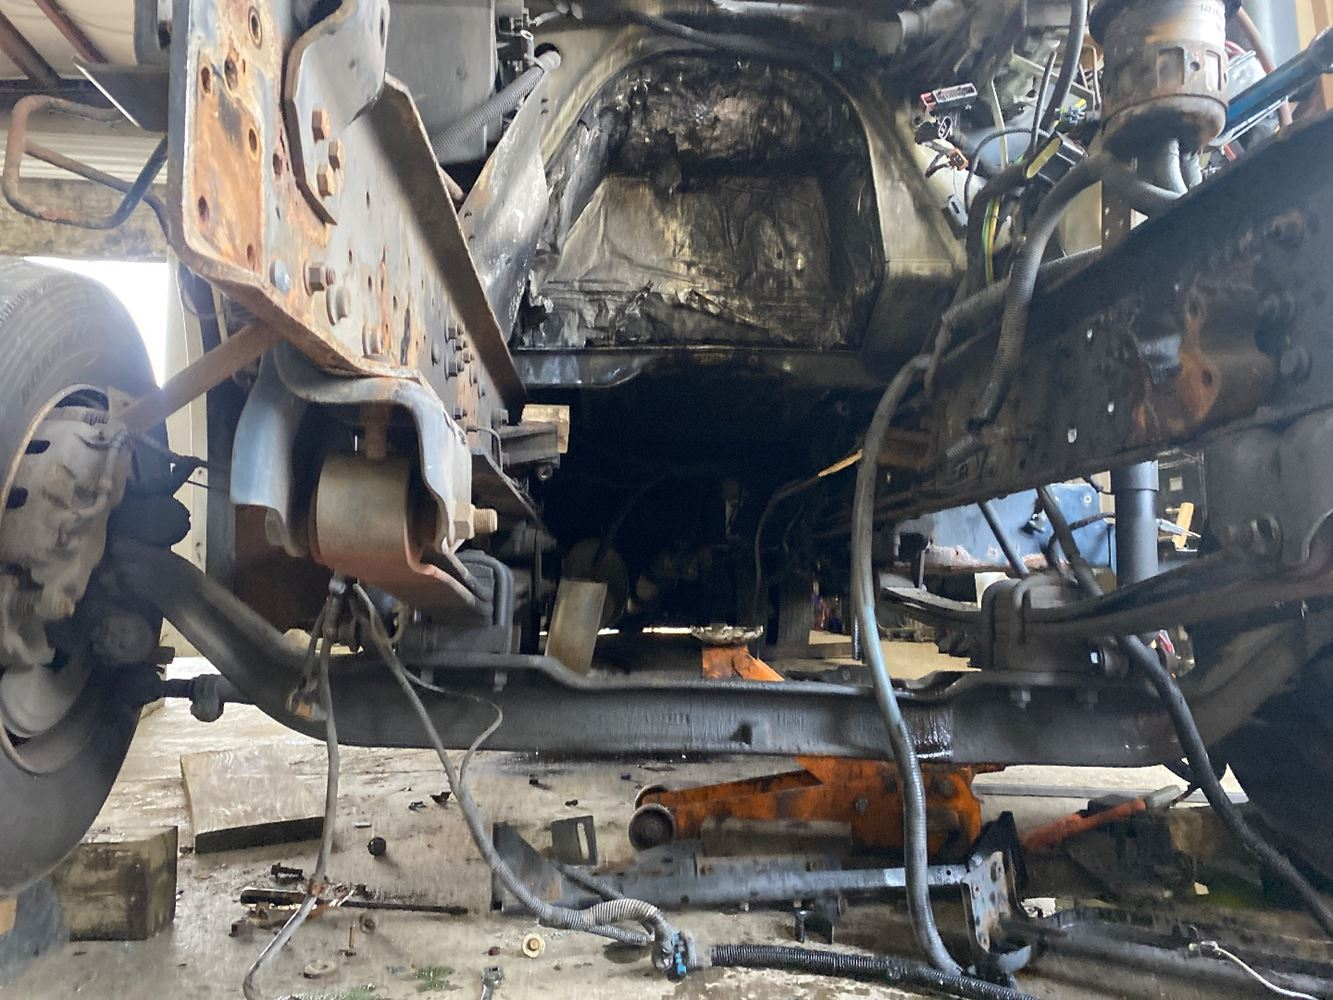 2007 INTERNATIONAL PC015 FRONT AXLE TRUCK PARTS #699115